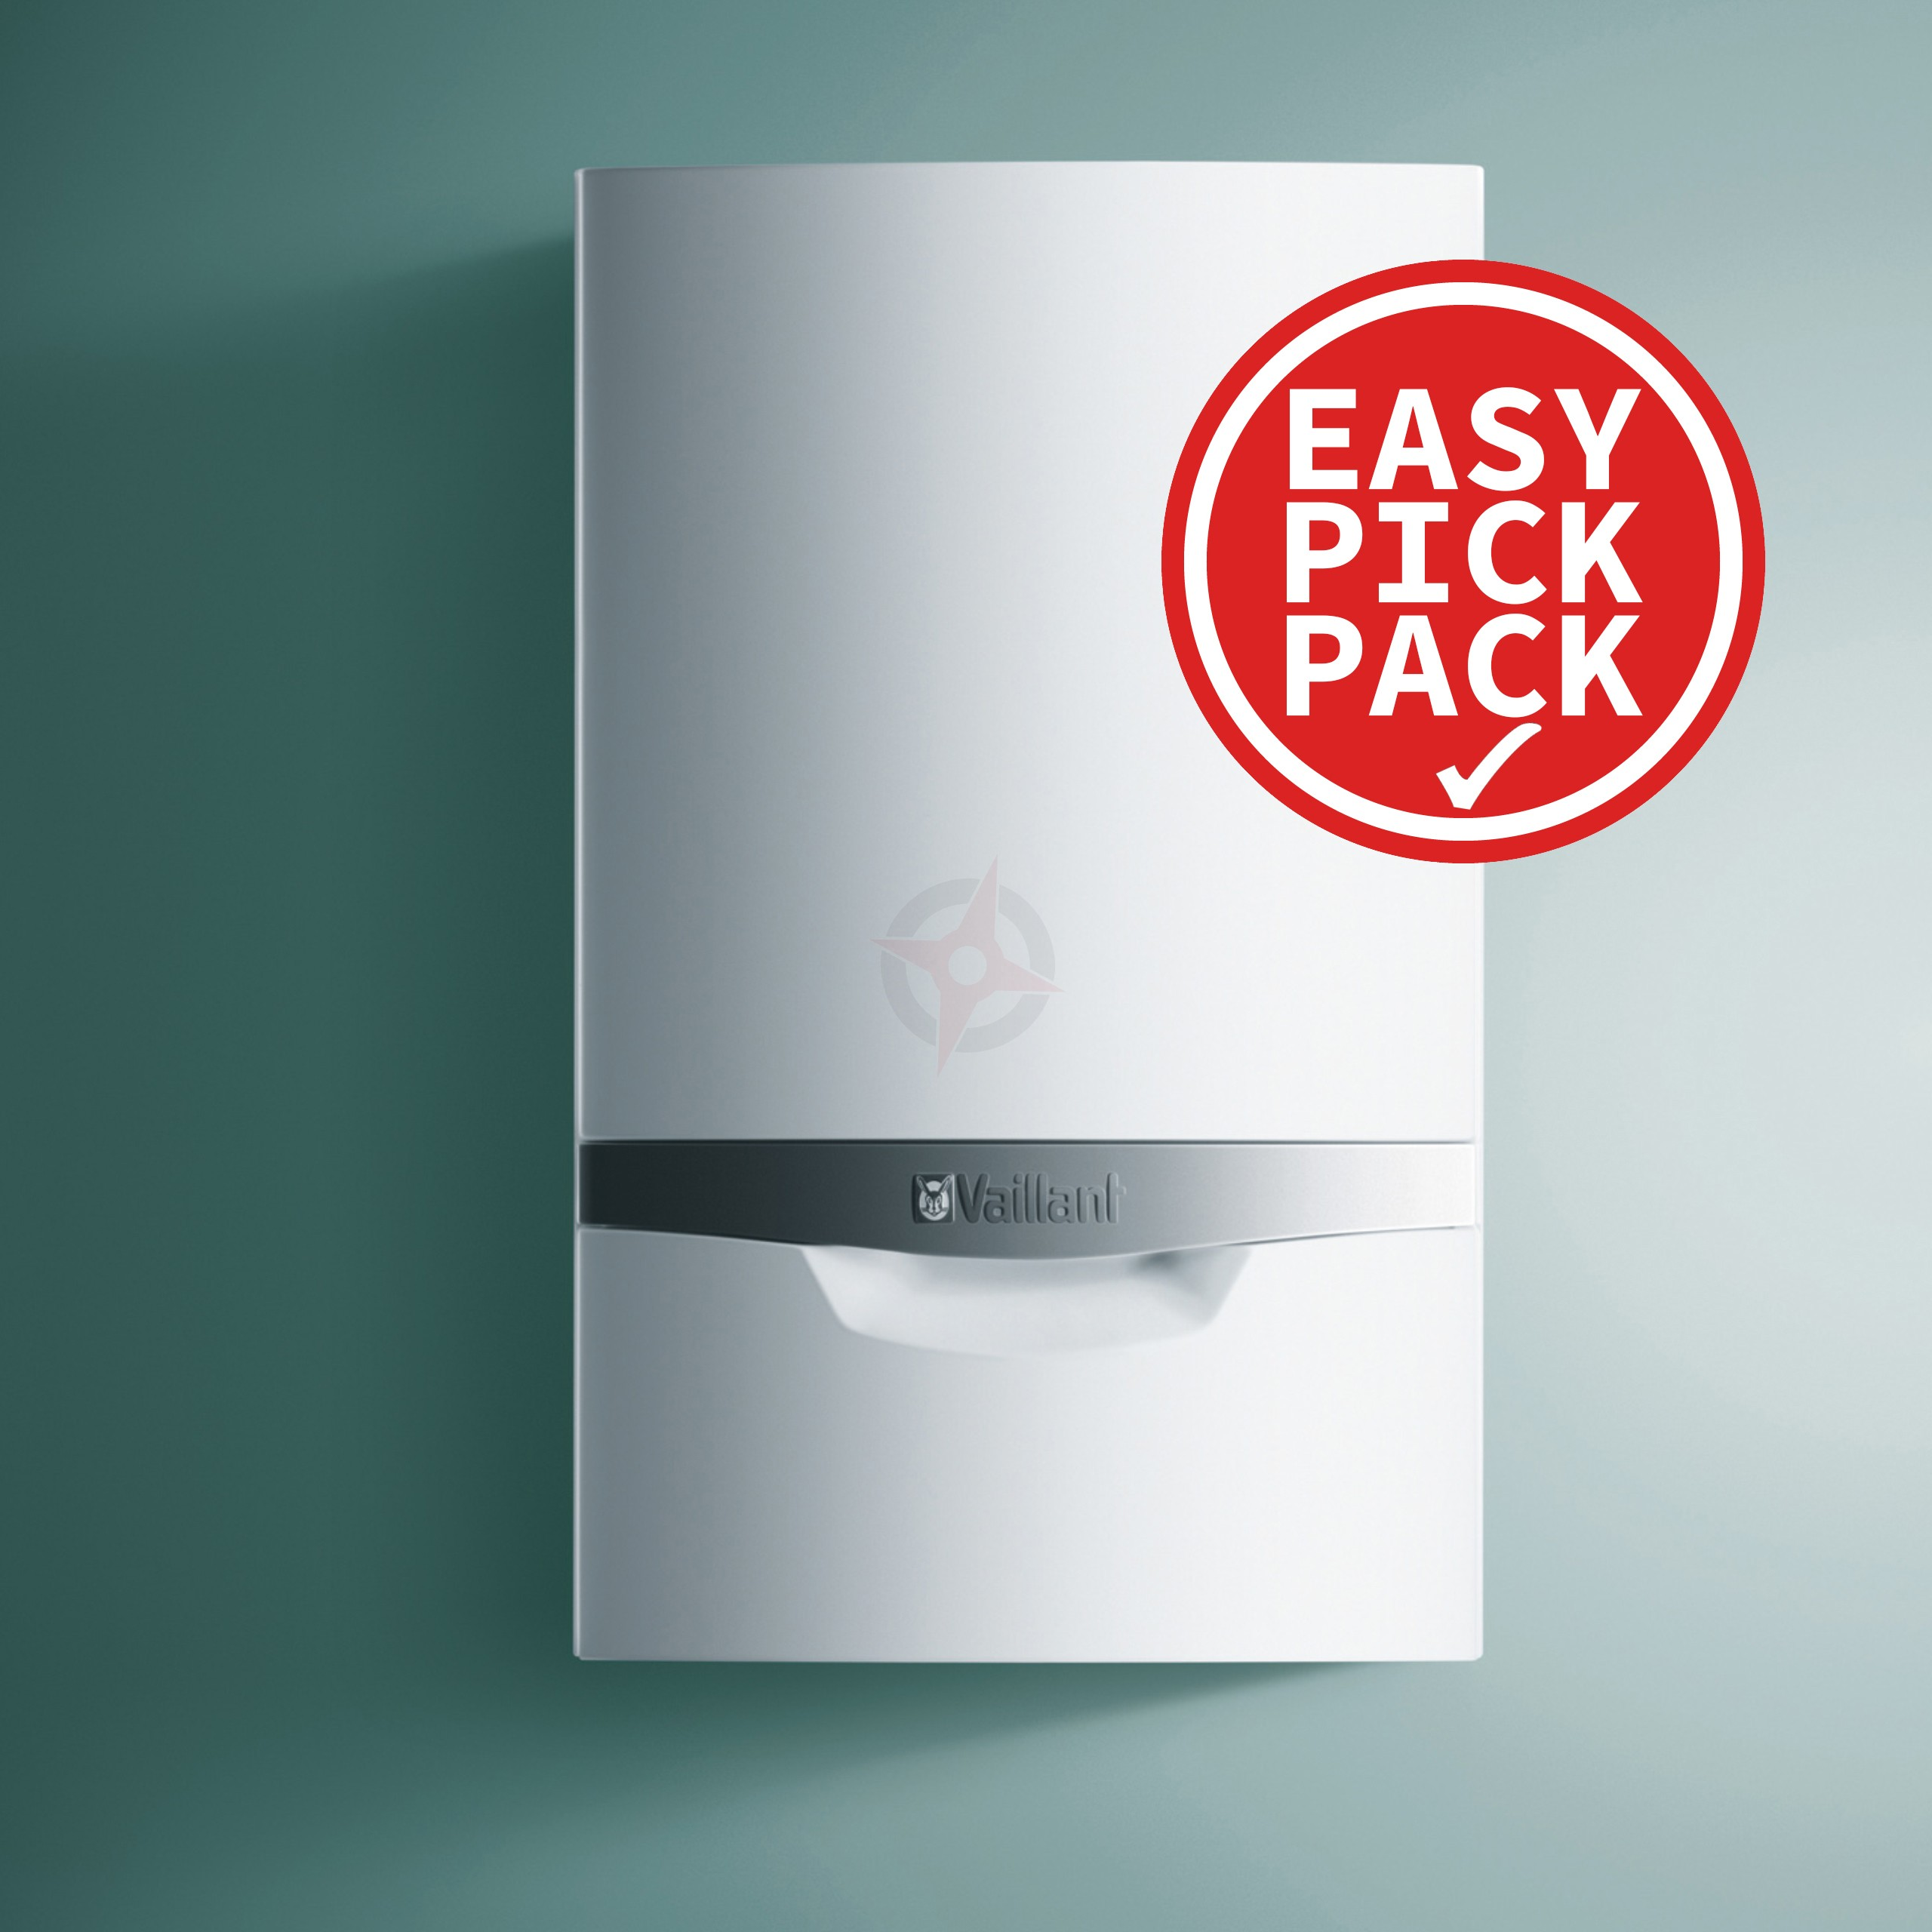 Vaillant EcoTec Plus 430 (ErP) Open Vent Boiler Easy Pick Pack